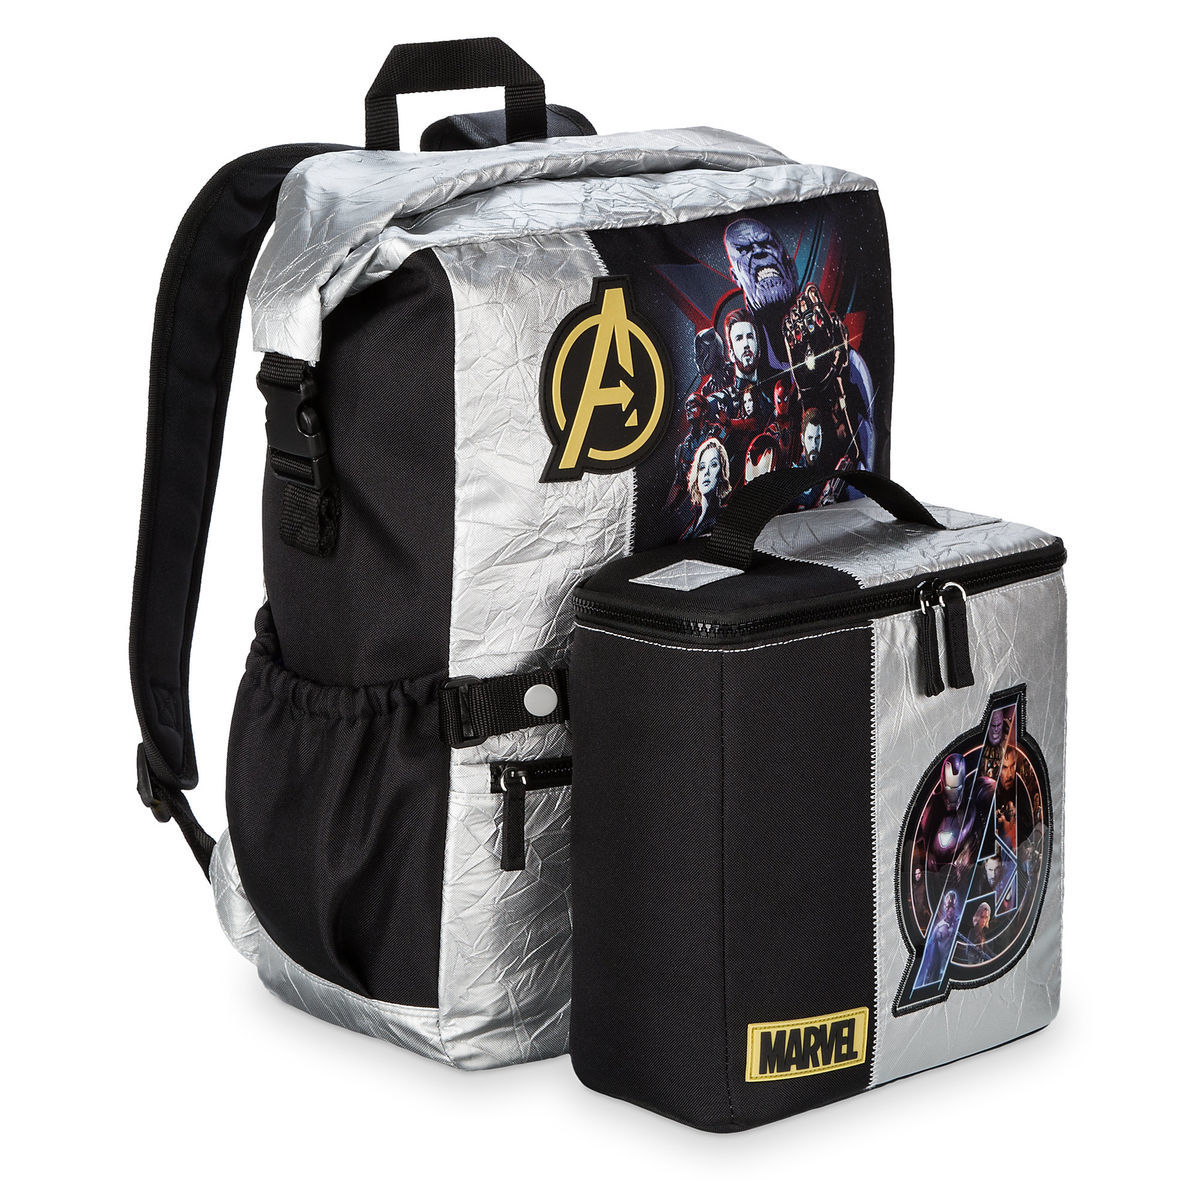 30c328eb49 Product Image of Avengers  Infinity War Backpack Collection   1